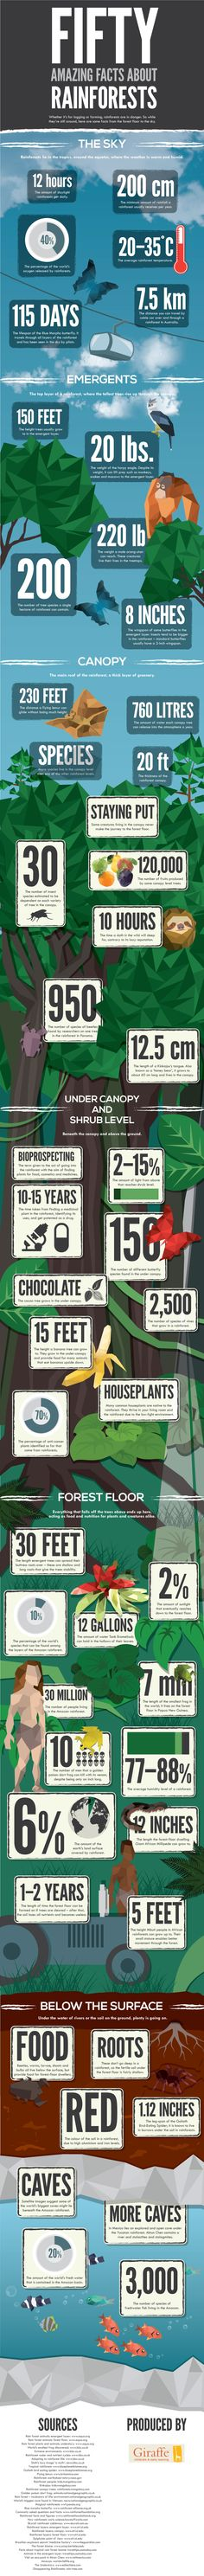 Great visual on rain forests and their value to the ecosystem.